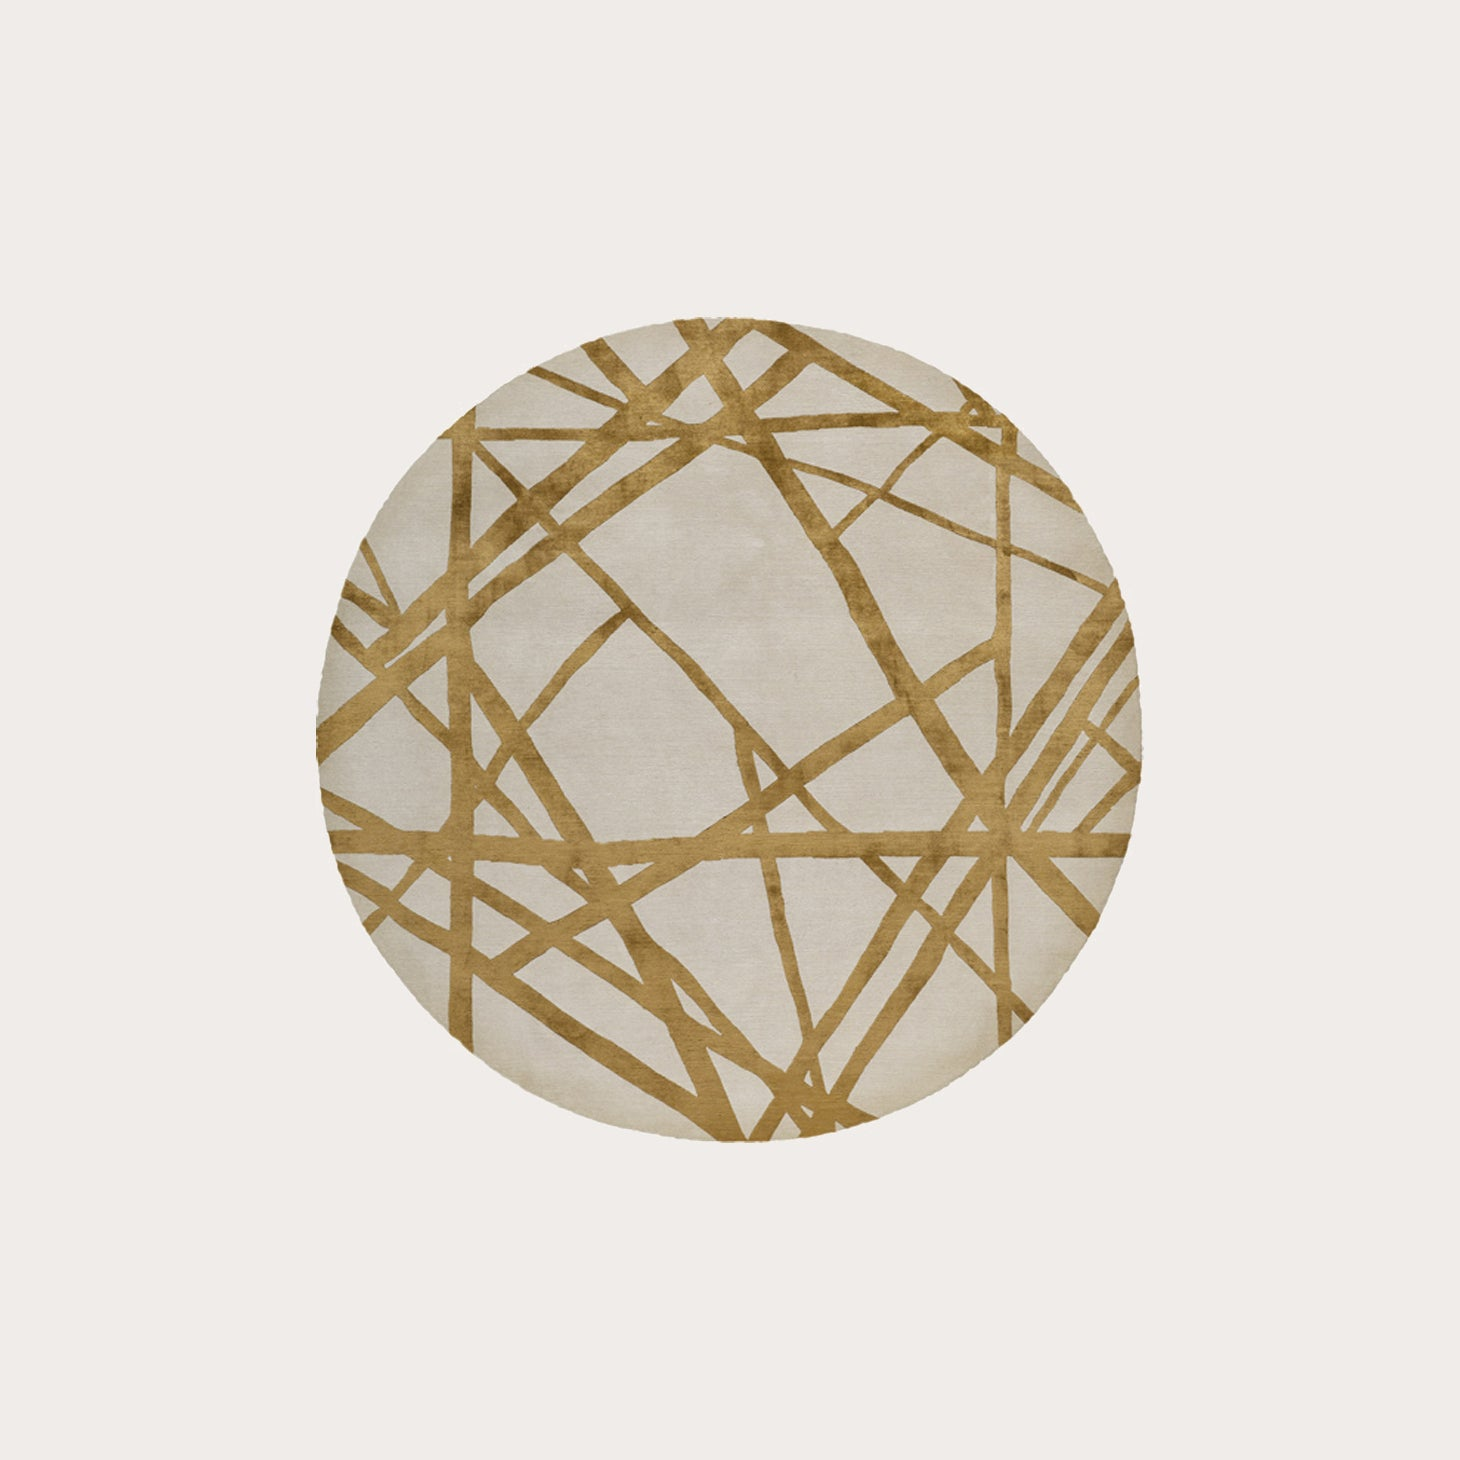 Channels Copper Round Rugs Kelly Wearstler Designer Furniture Sku: 391-150-11461